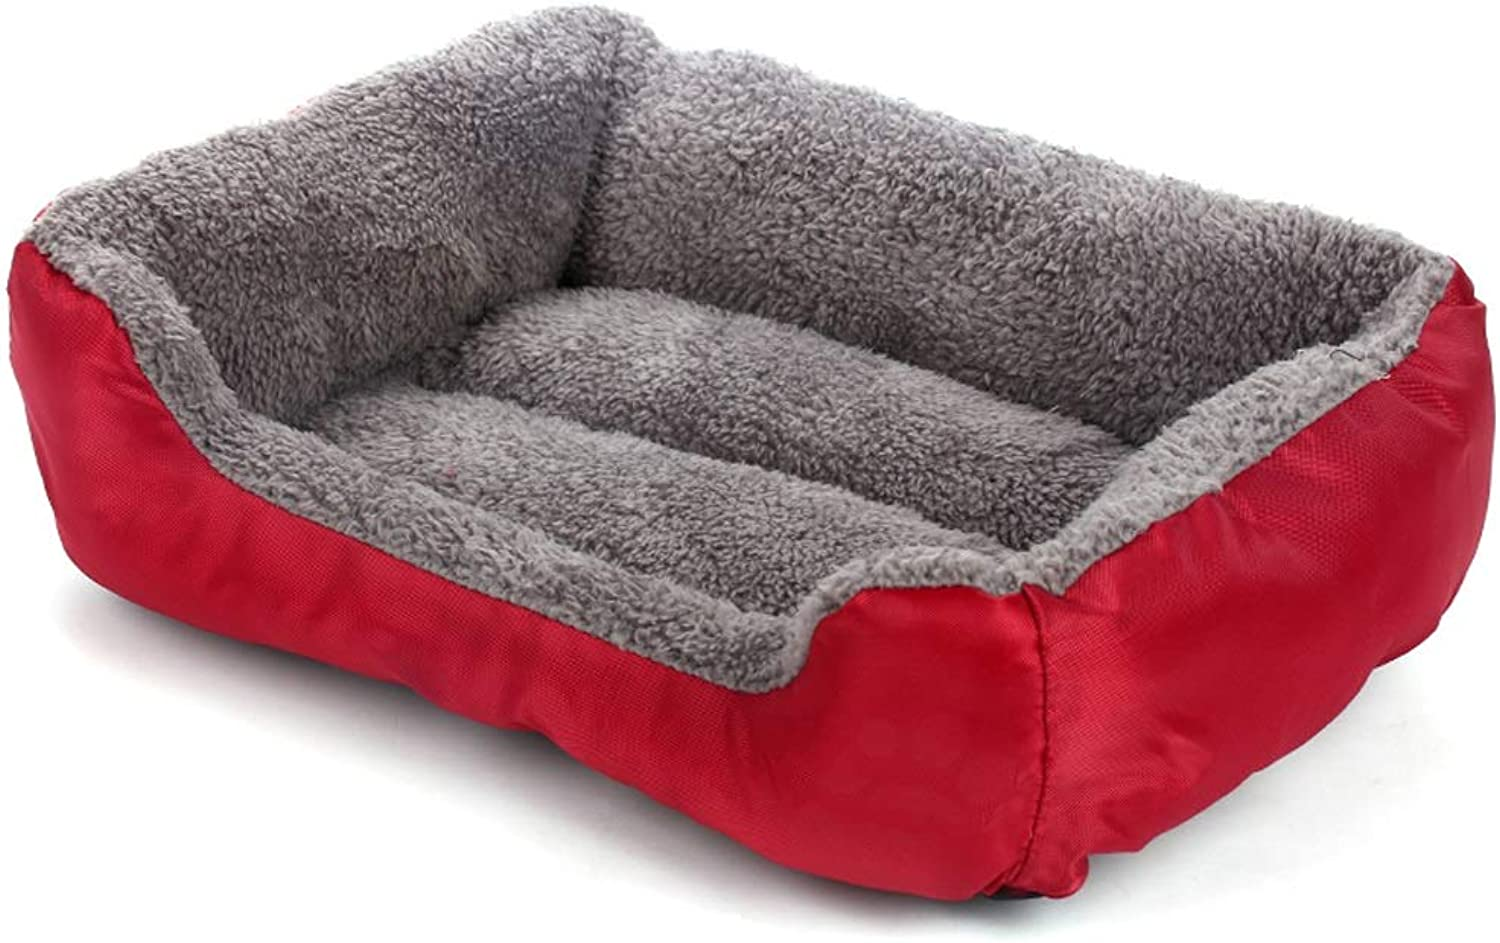 Kennel, Large Mediumsized Dog Winter Warm Thick Cat Litter Autumn Winter Pet Nest Mat Bed Room House Six colors Optional (color   pink Red, Size   S)